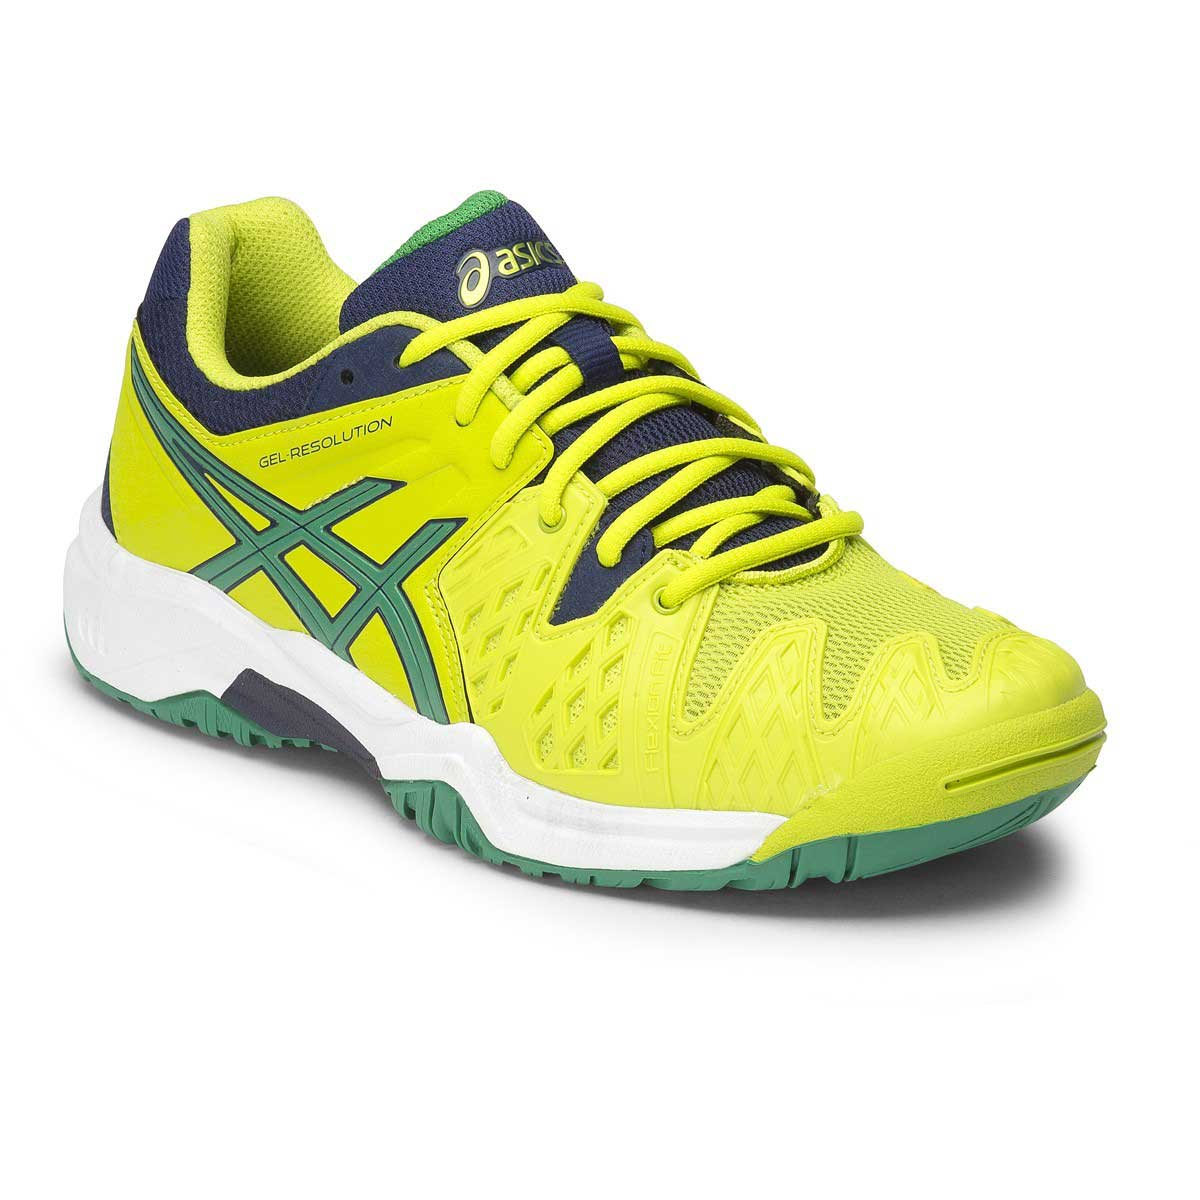 new concept 63723 a0f11 Asics Gel Resolution 6 Tennis Shoes